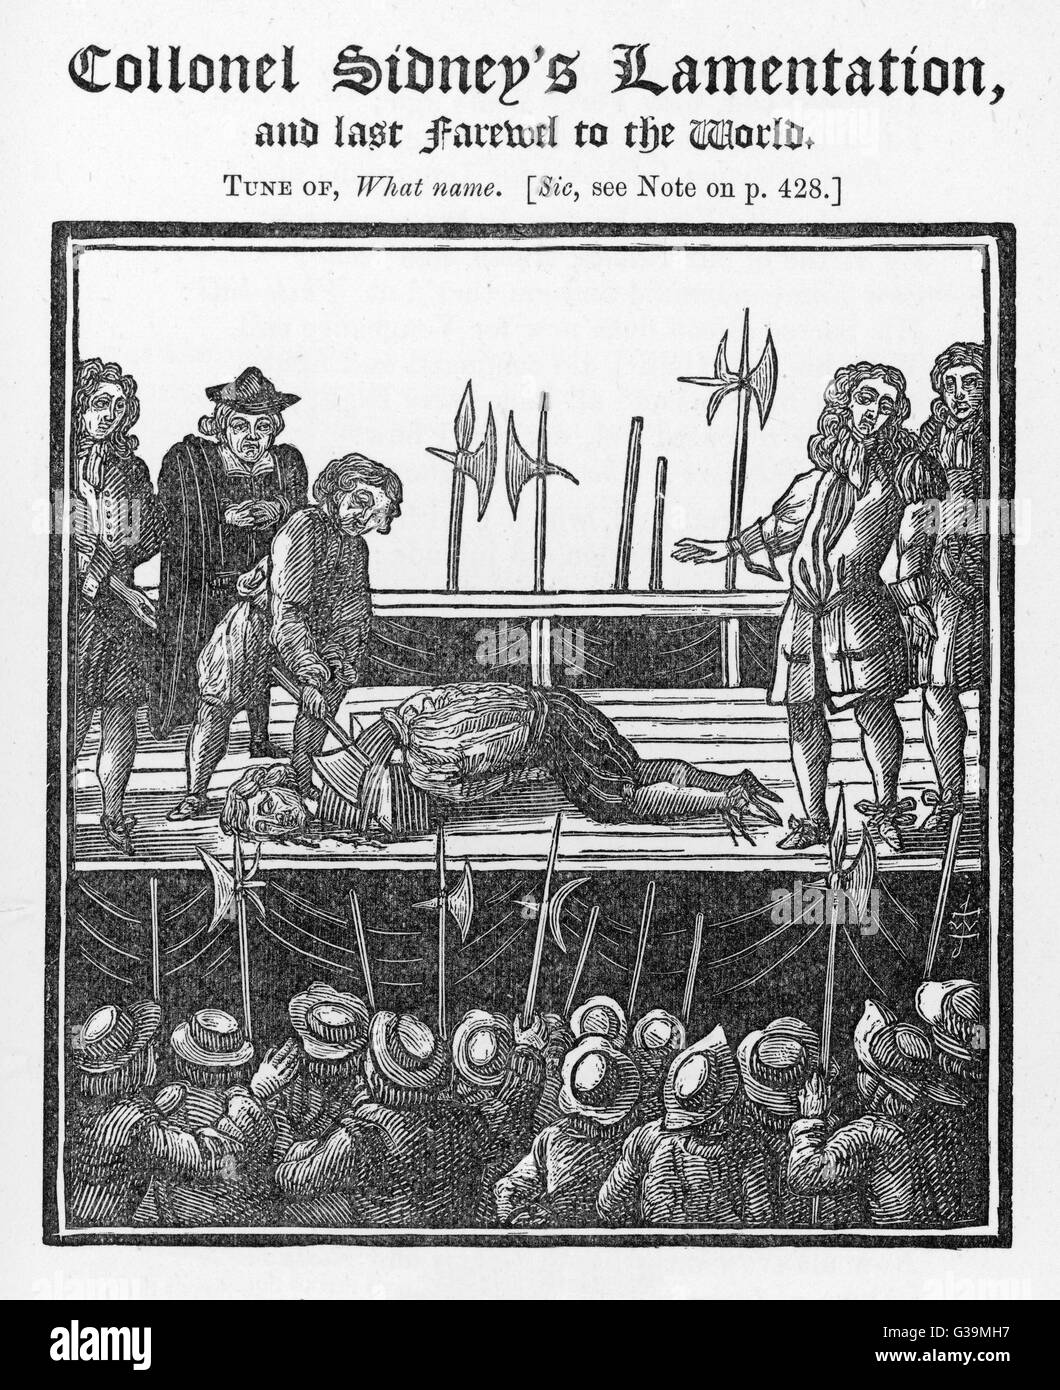 He is beheaded at London on  a charge of conspiracy         Date: December 1683 - Stock Image